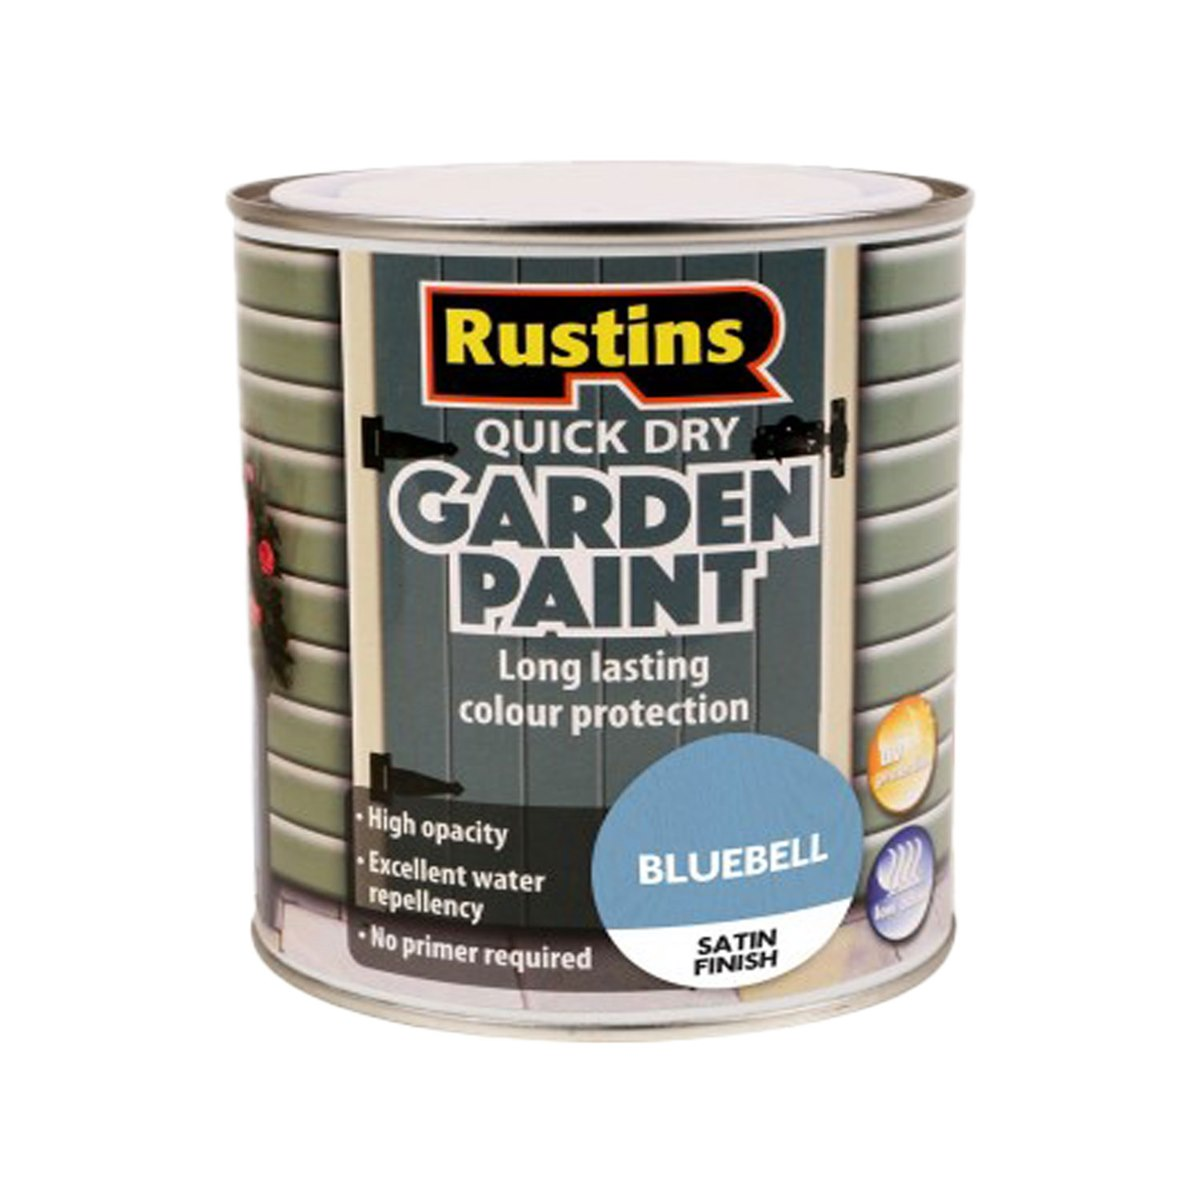 Rustins Quick Dry Garden Paint Satin Finish Bluebell